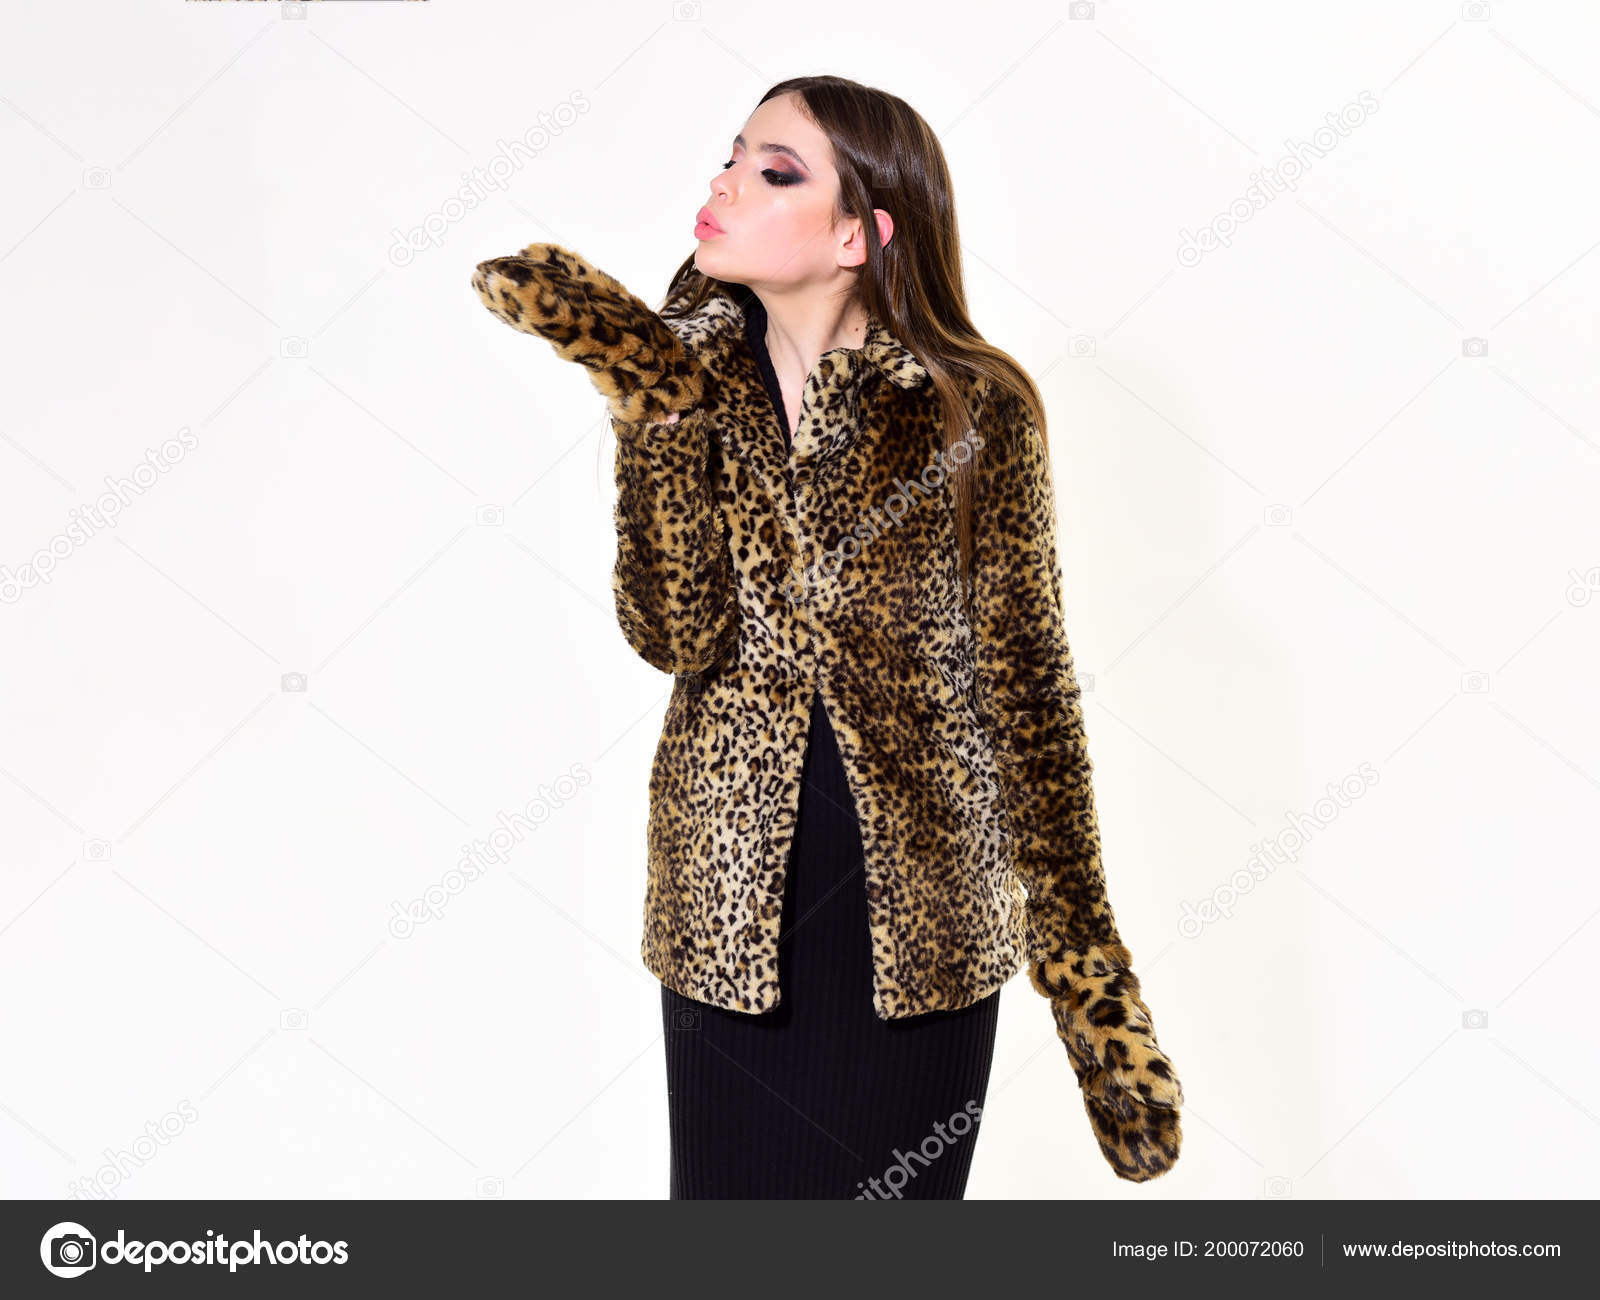 Fell mantel leopard